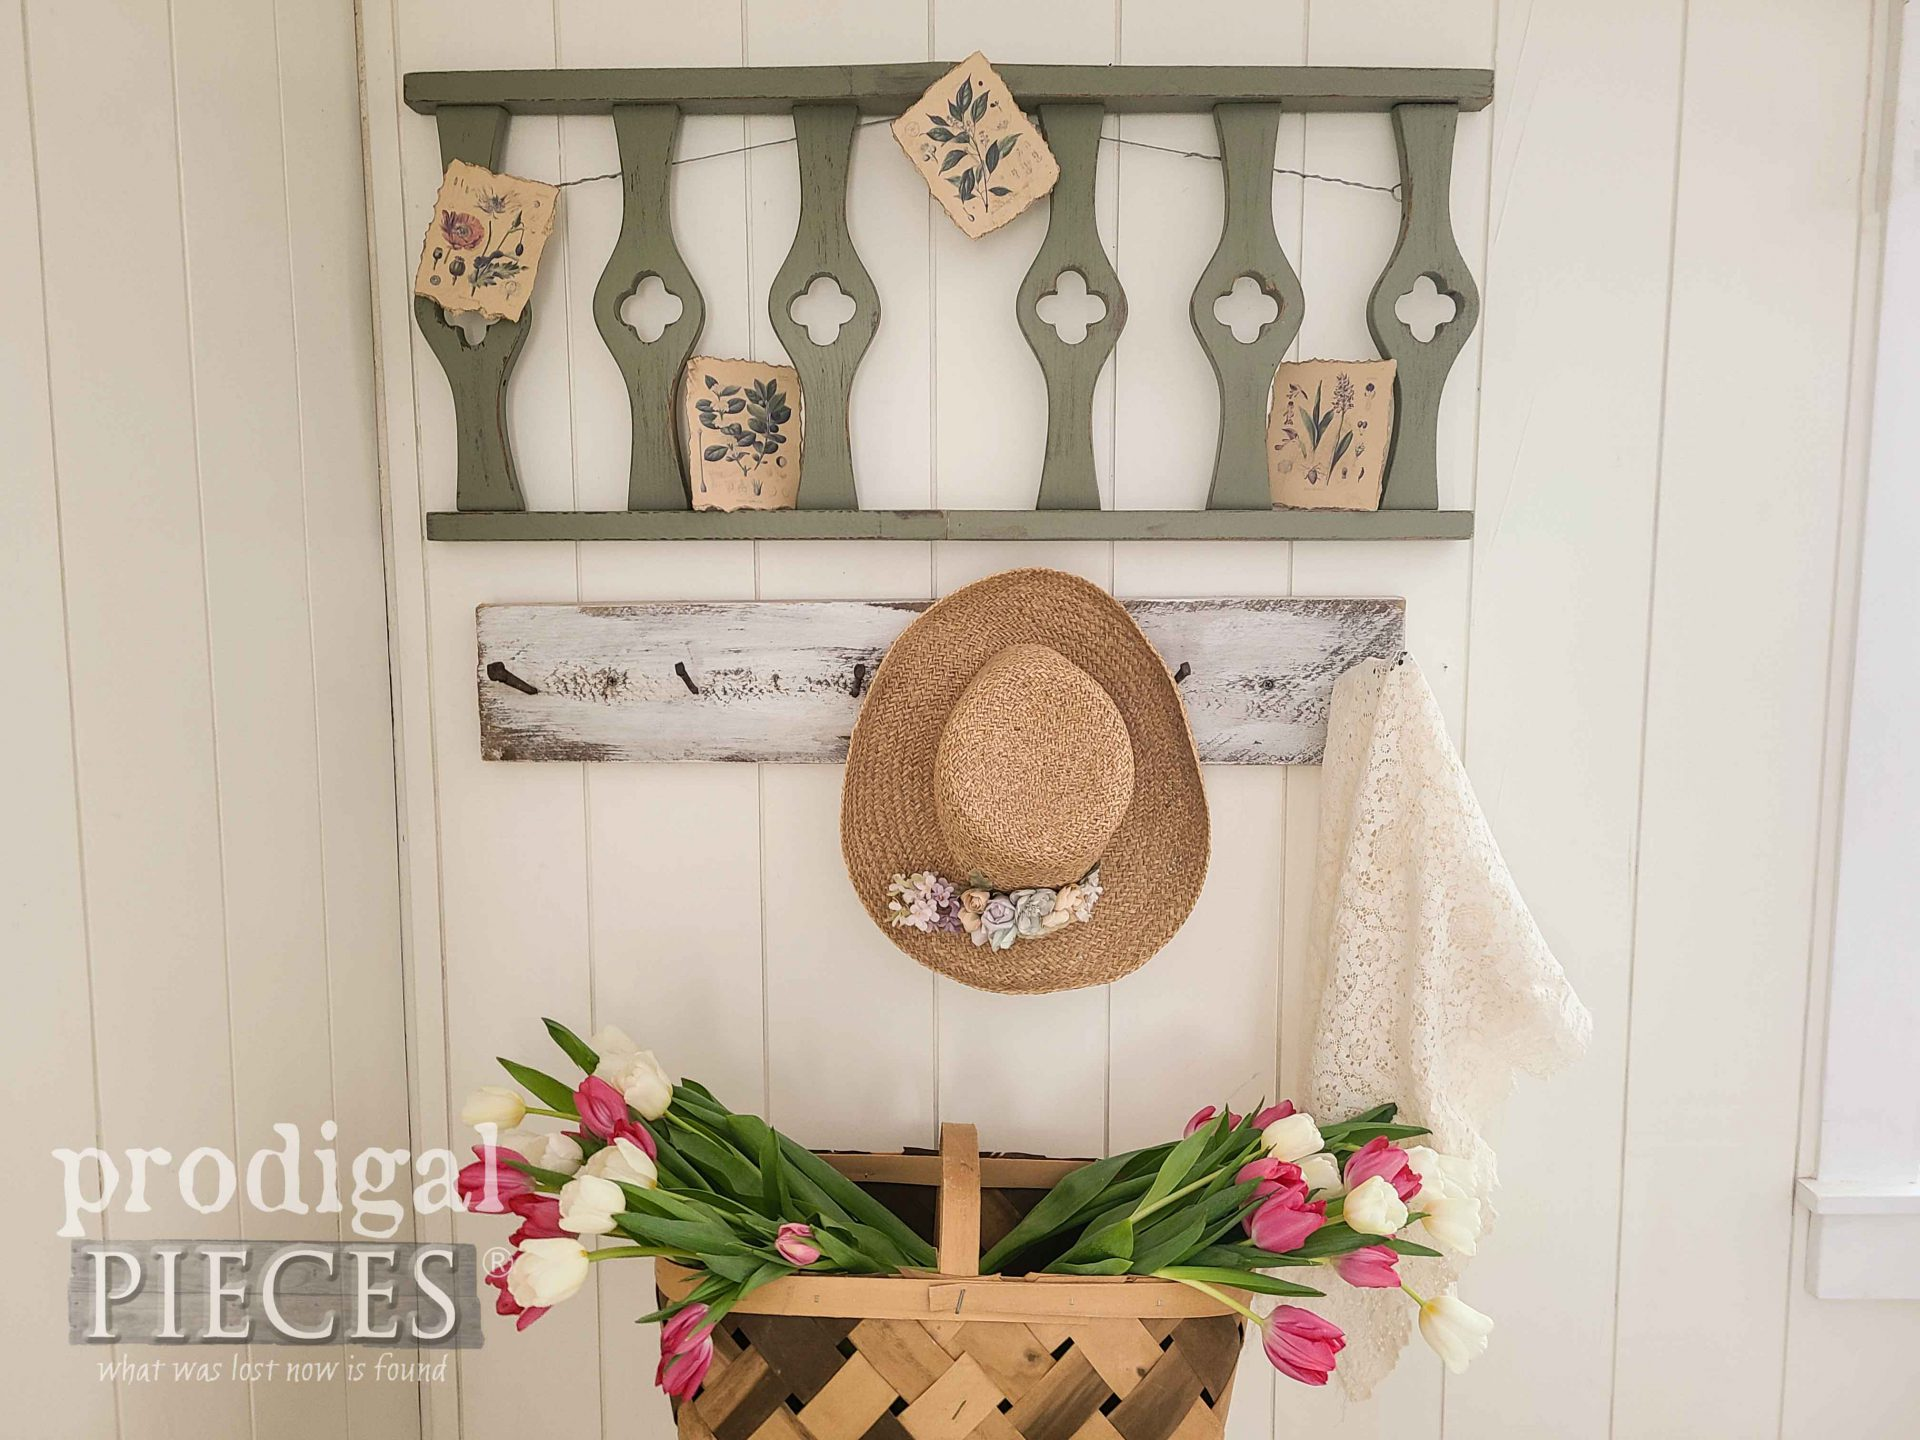 Repurposed Chairs for Salvaged Spring Decor by Larissa of Prodigal Pieces | prodigalpieces.com #prodigalpieces #spring #diy #home #homedecor